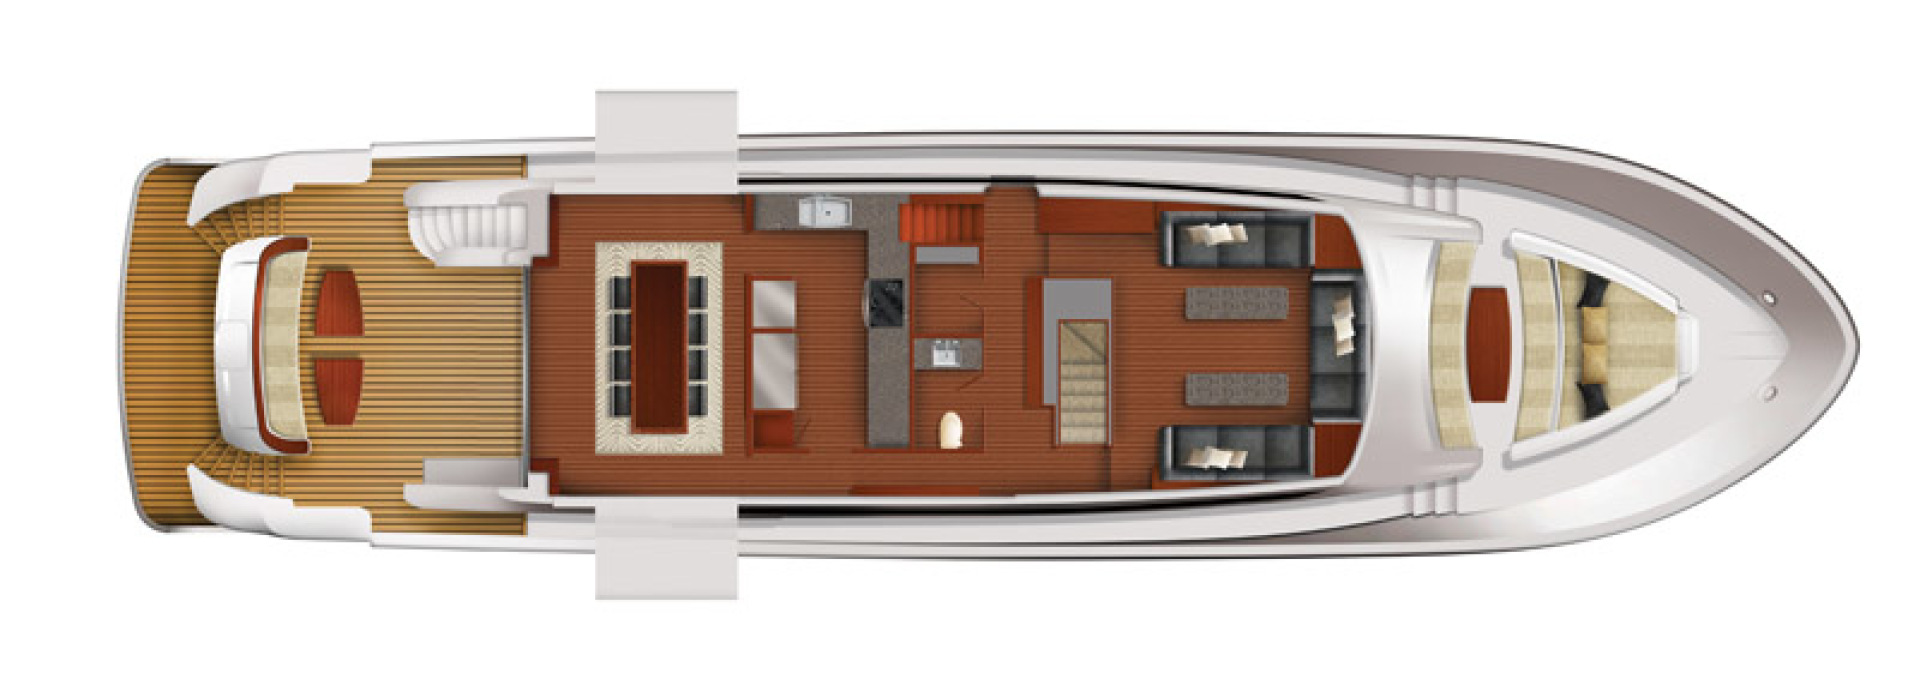 Hatteras-M90 Panacera 2020 -Cape May-New Jersey-United States-Layout Drawing-1084081 | Thumbnail